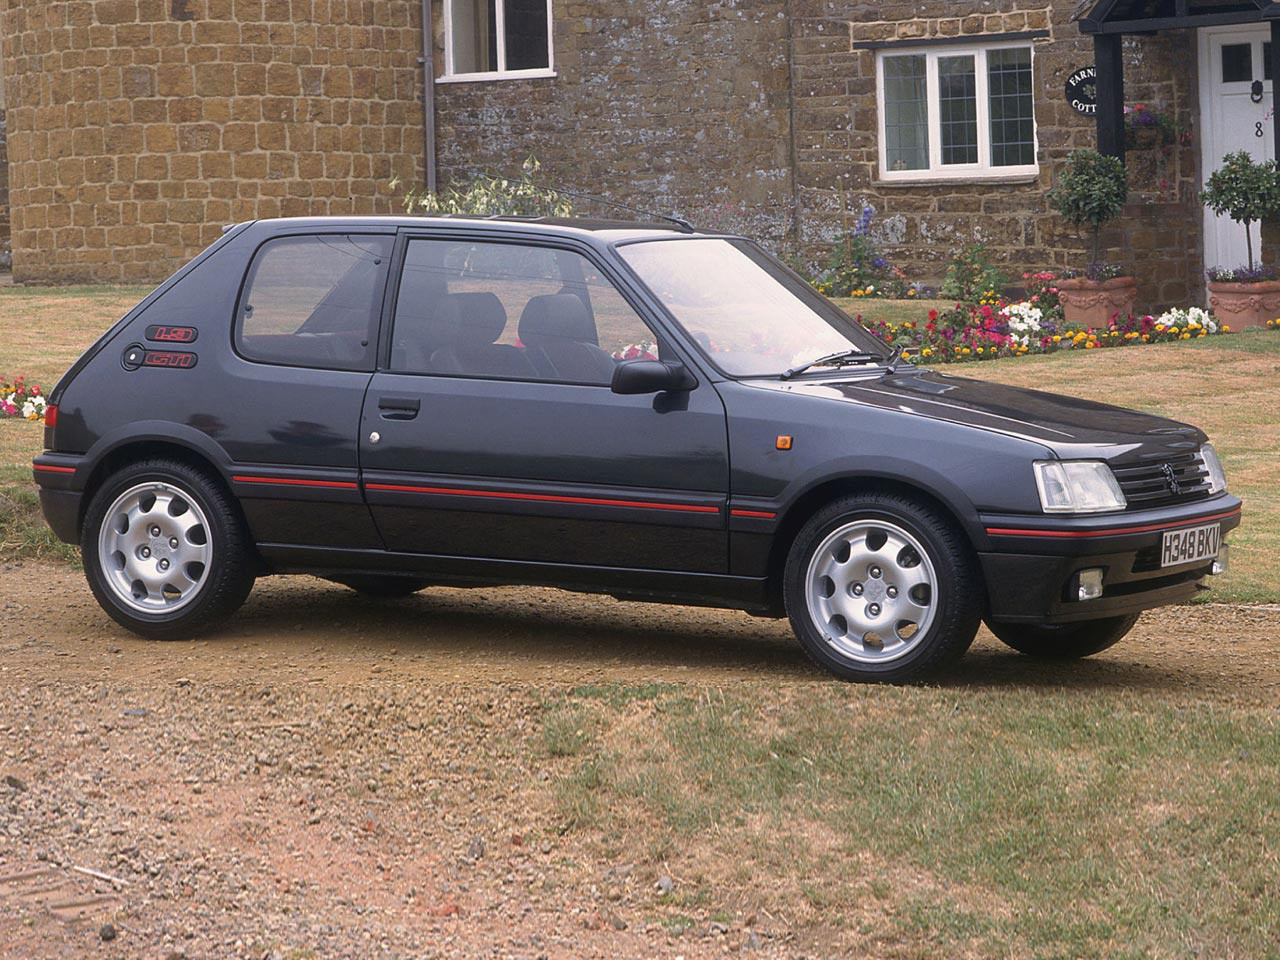 peugeot 205 gti specs photos 1984 1985 1986 1987 1988 1989 1990 1991 1992 1993. Black Bedroom Furniture Sets. Home Design Ideas